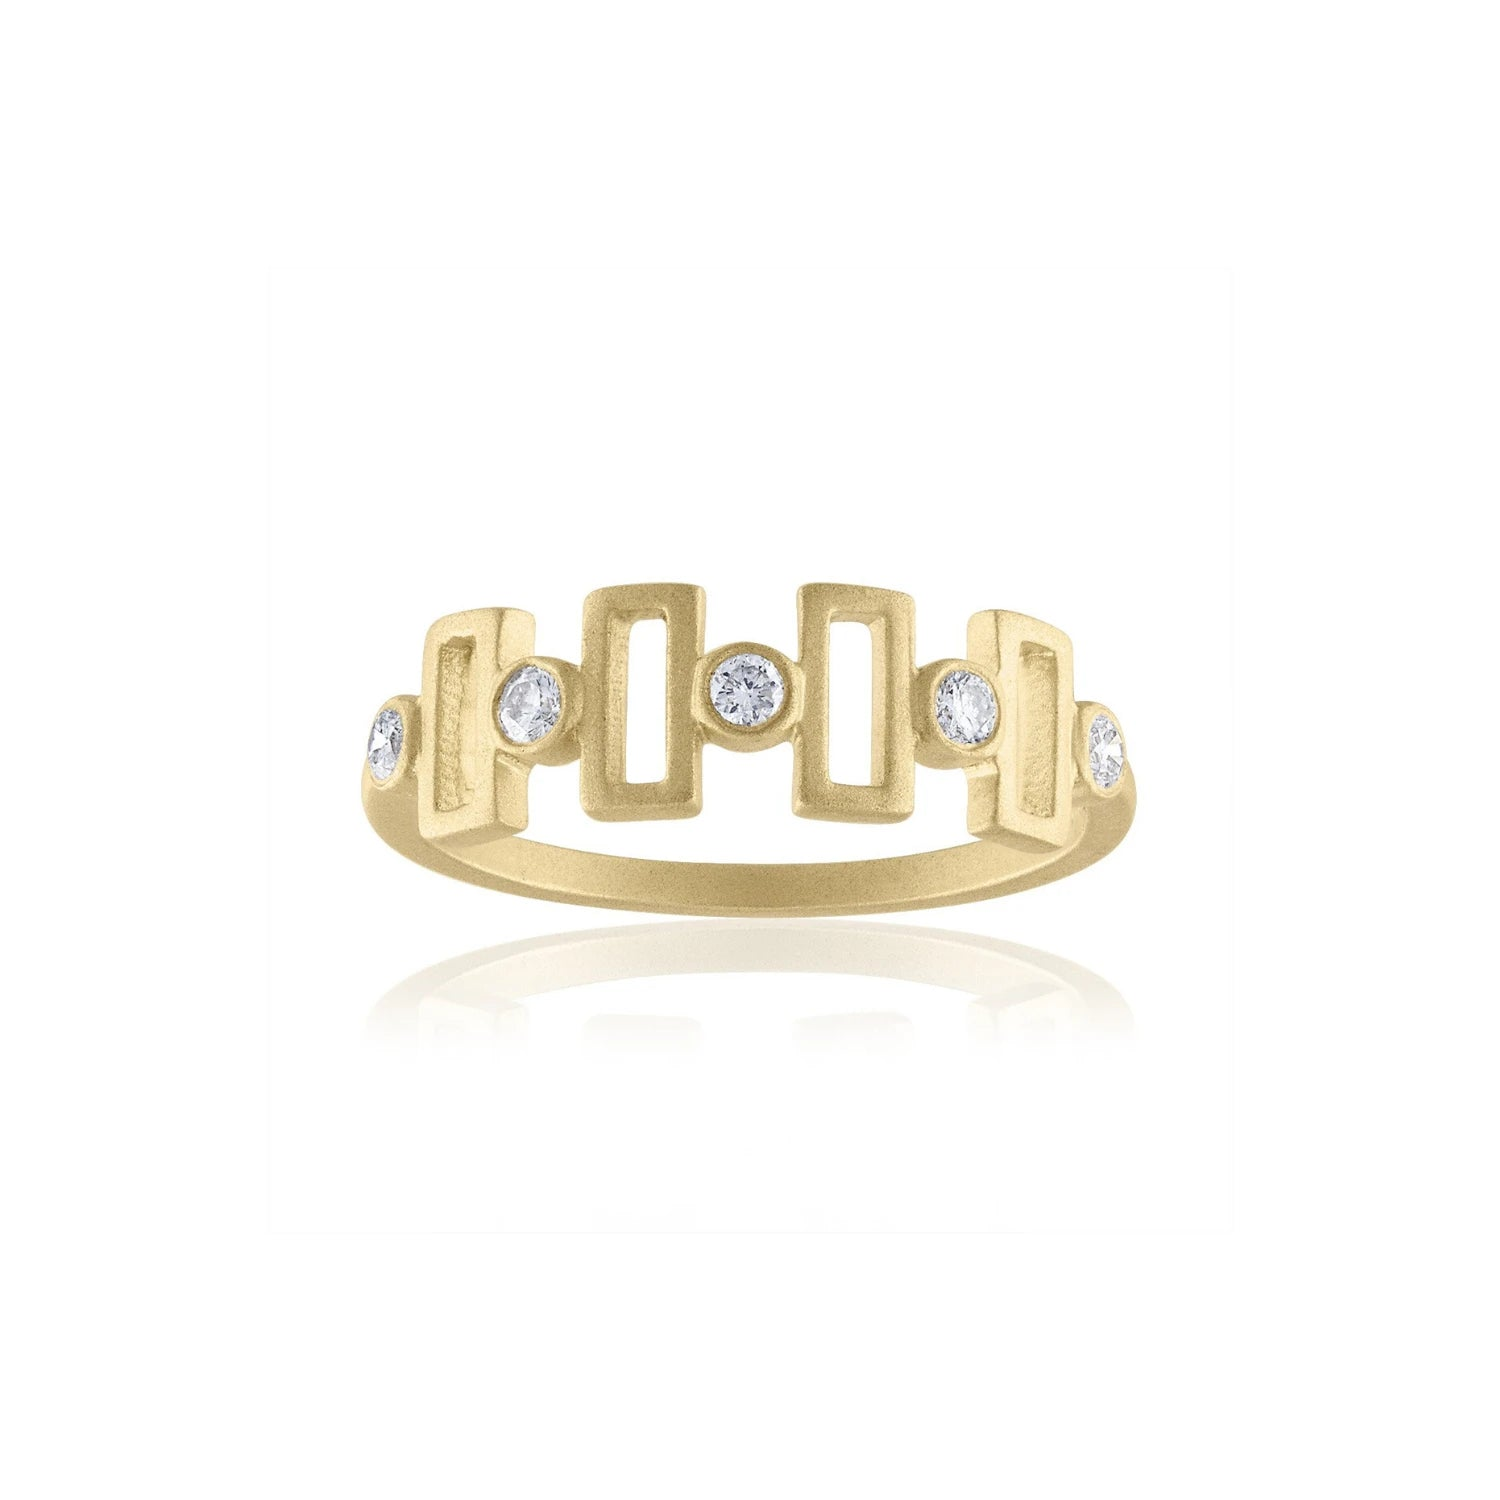 GOLD AND DIAMOND GEOMETRIC RING